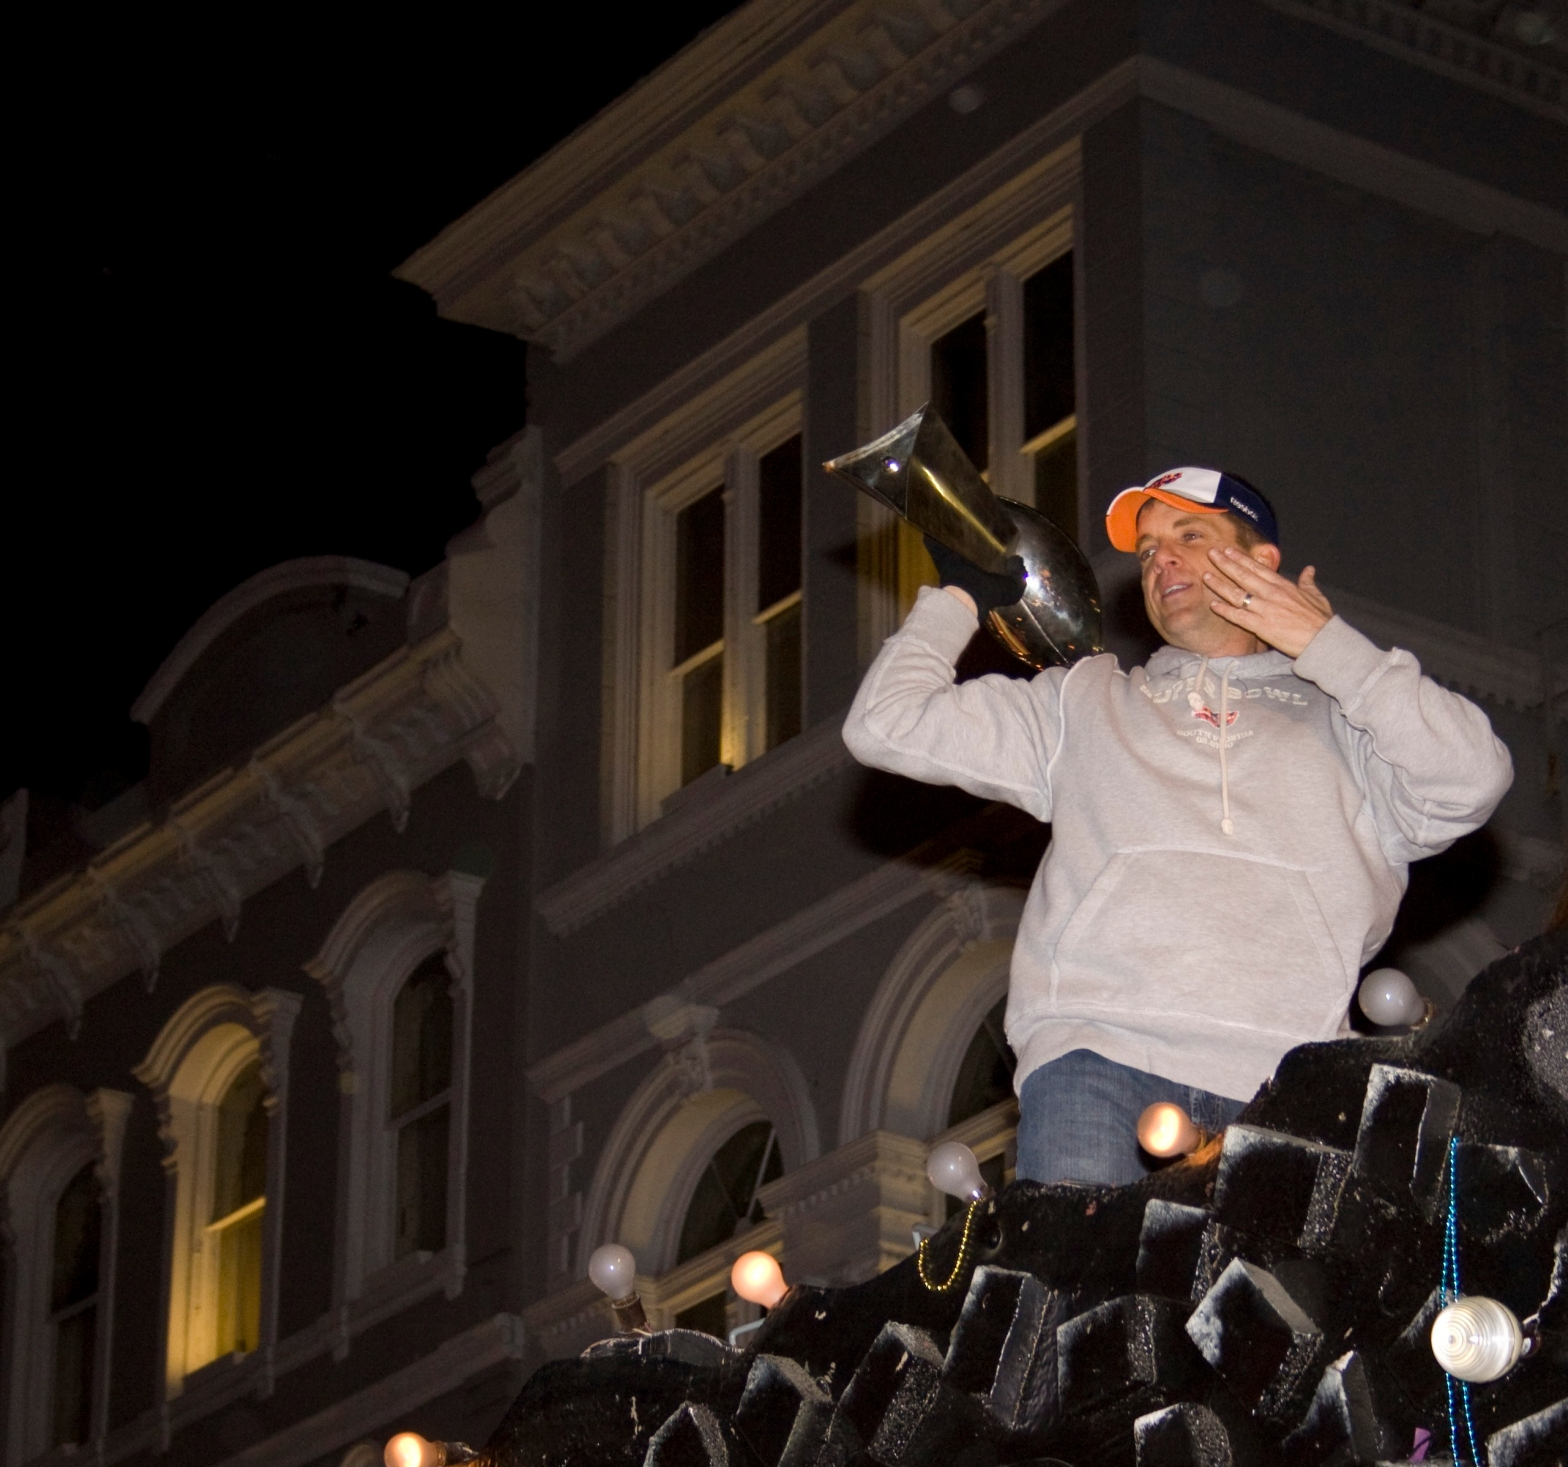 Sean Payton with Lombardi Trophy